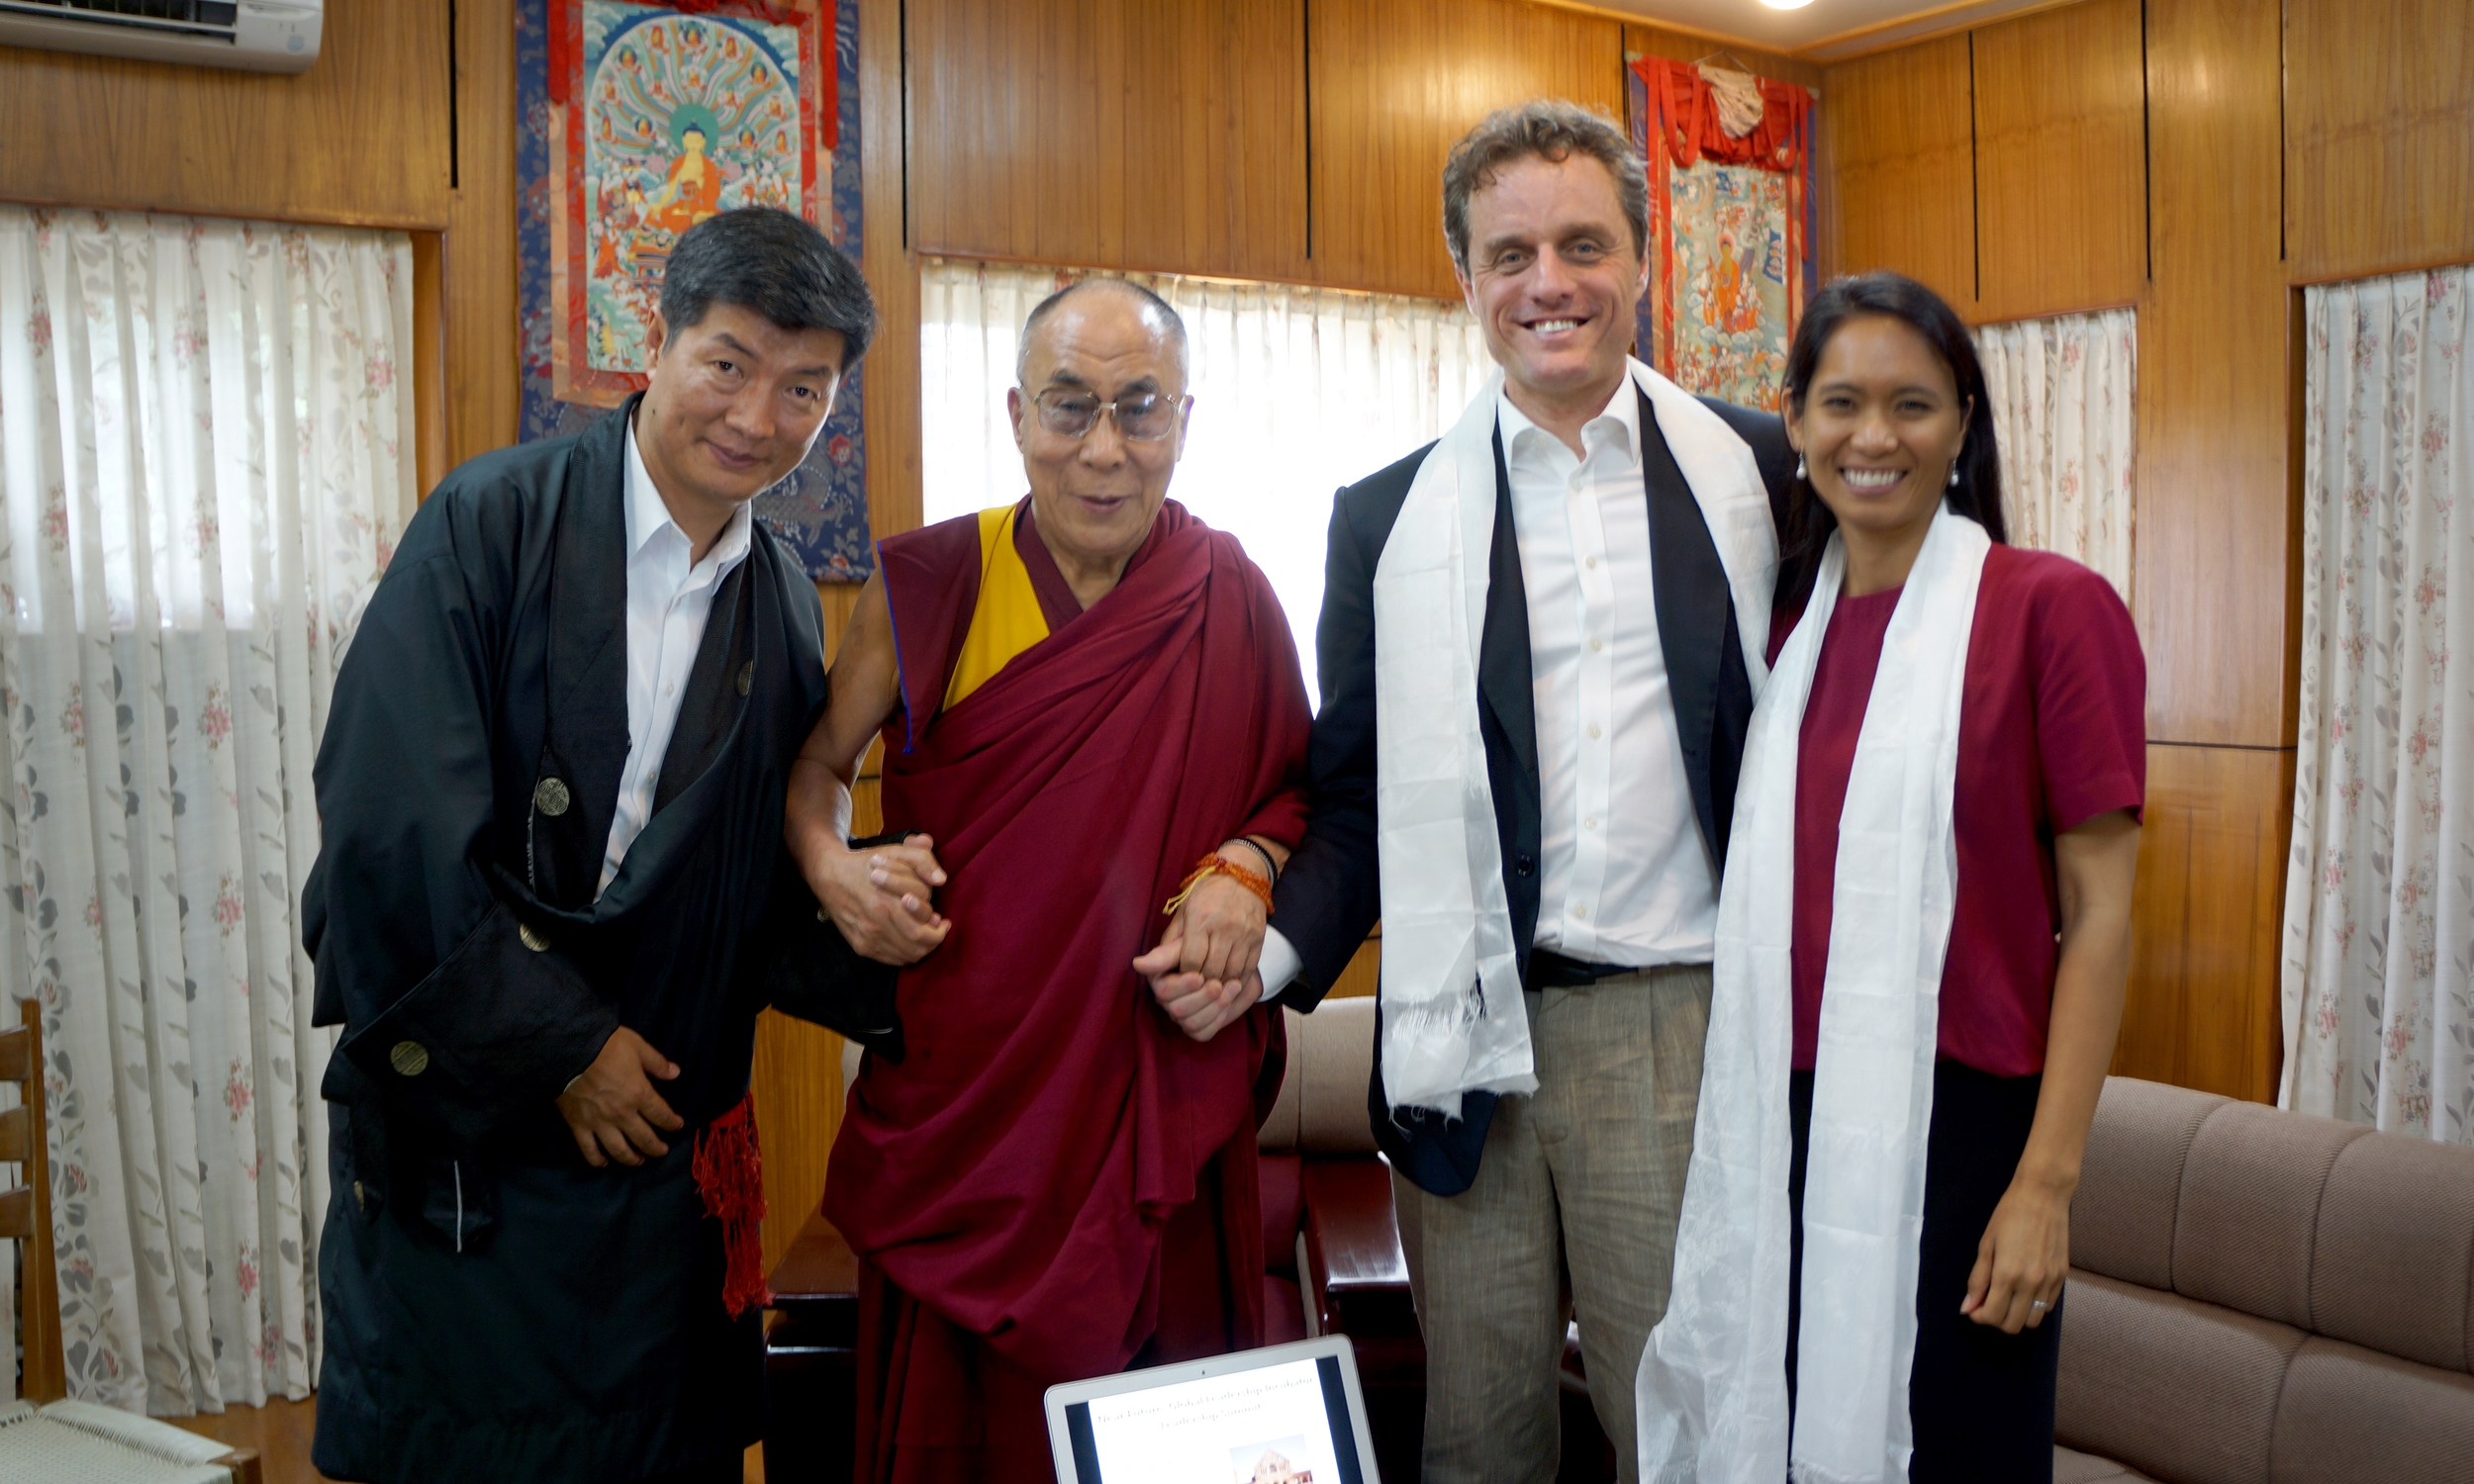 Picture of Sikyong (Prime Minister of Tibet) Lobsang Sangay and the Dalai Lama with Michael and Ana McCullough